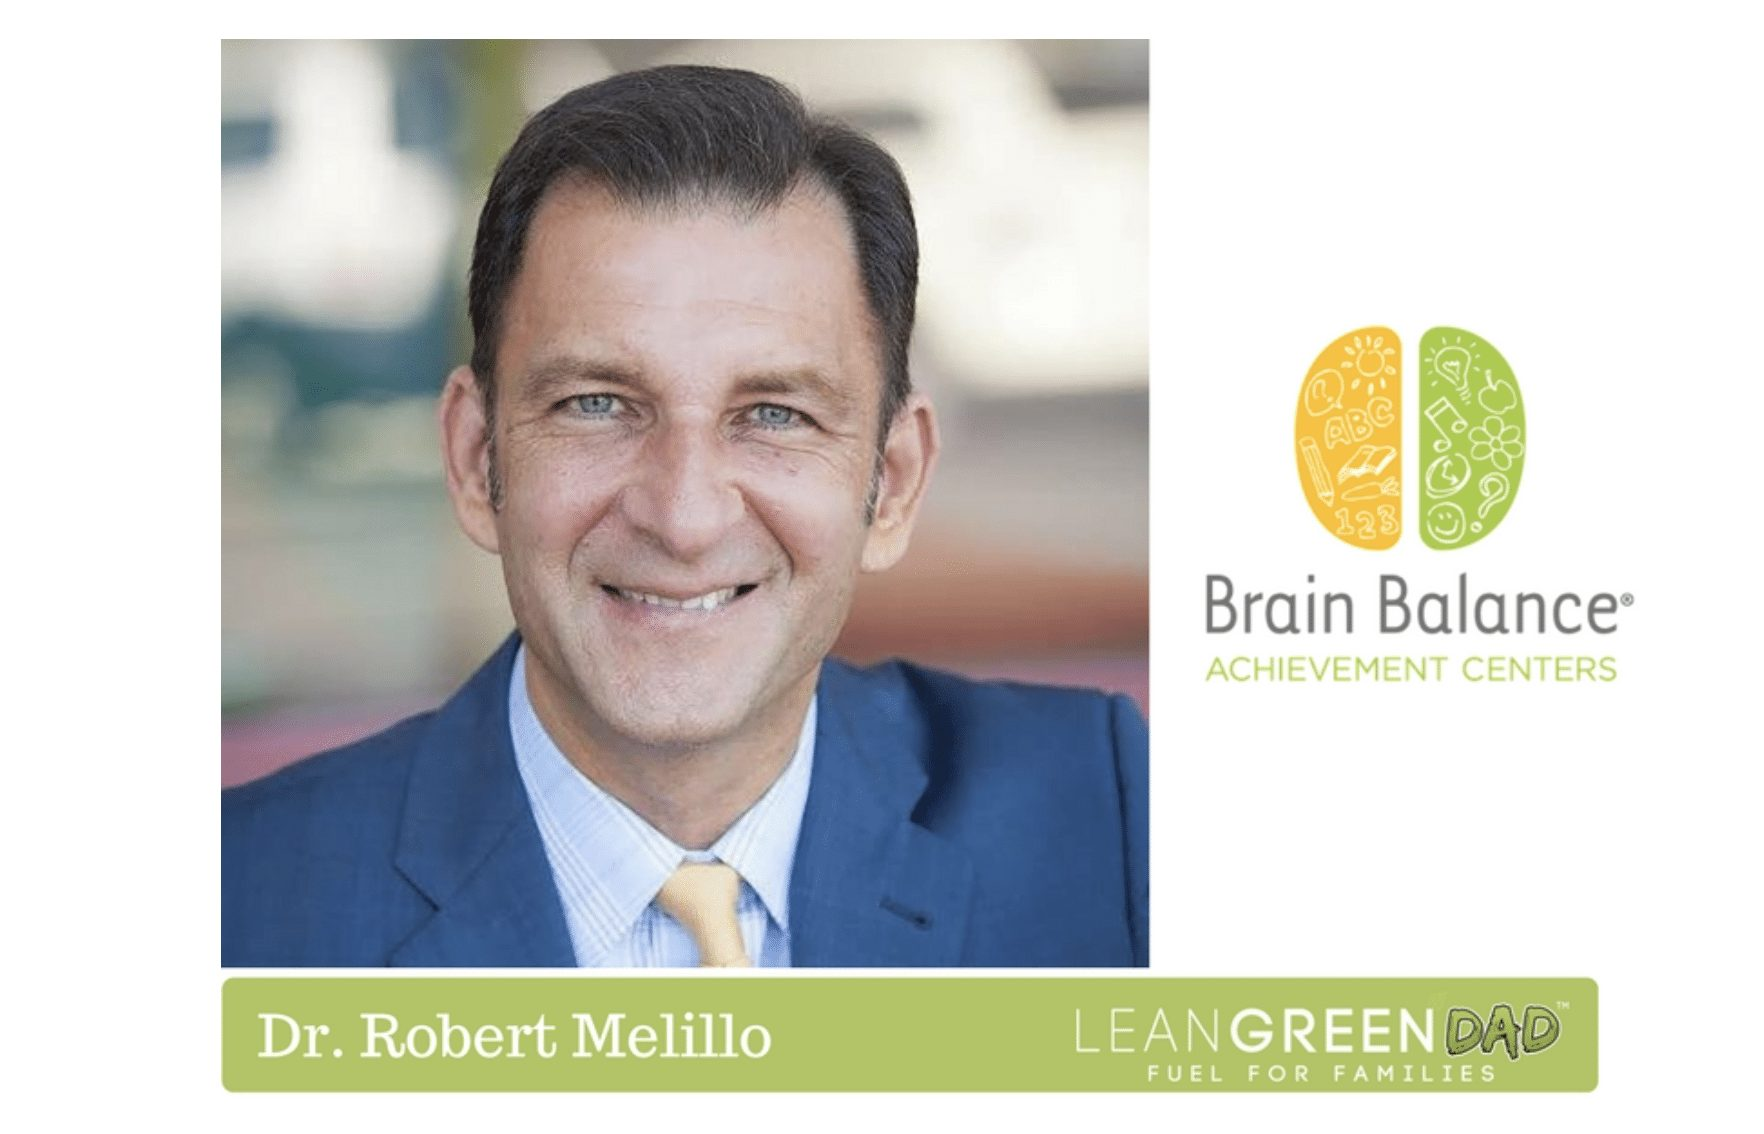 Dr. Robert Melillo on Lean Green Dad